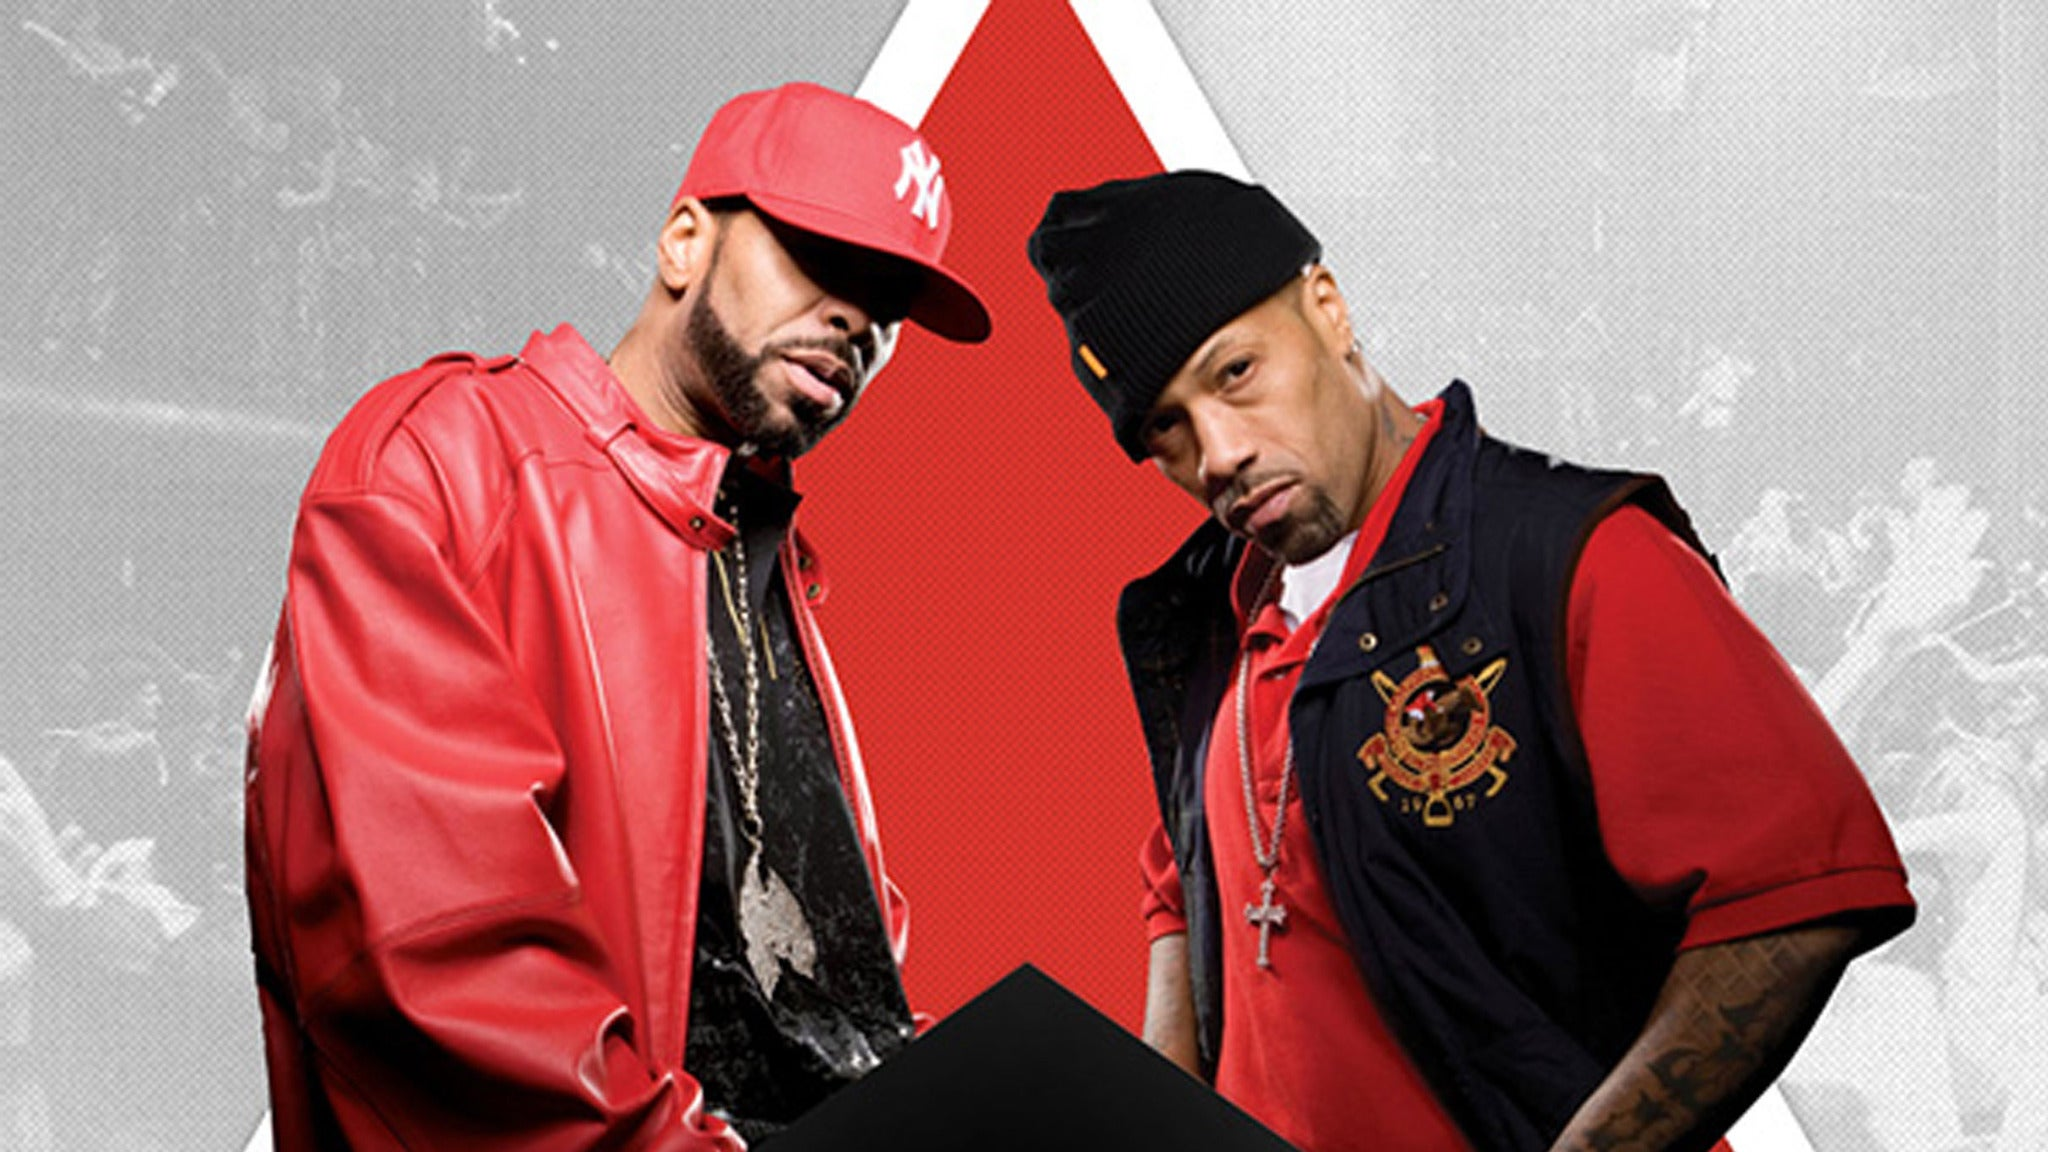 Method Man & Redman at The Observatory - Santa Ana